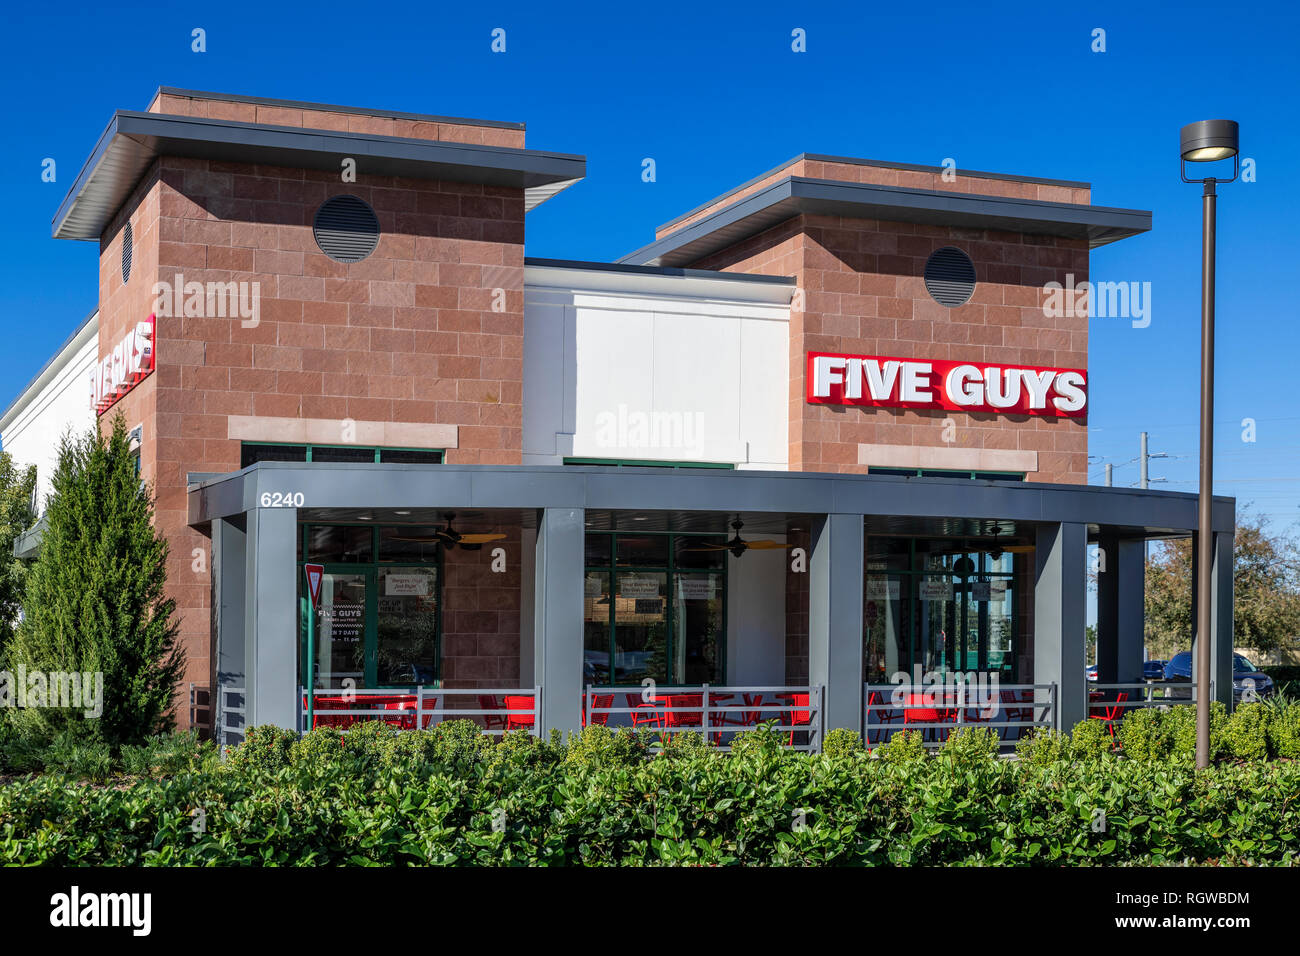 Five Guys fast casual restaurant. - Stock Image